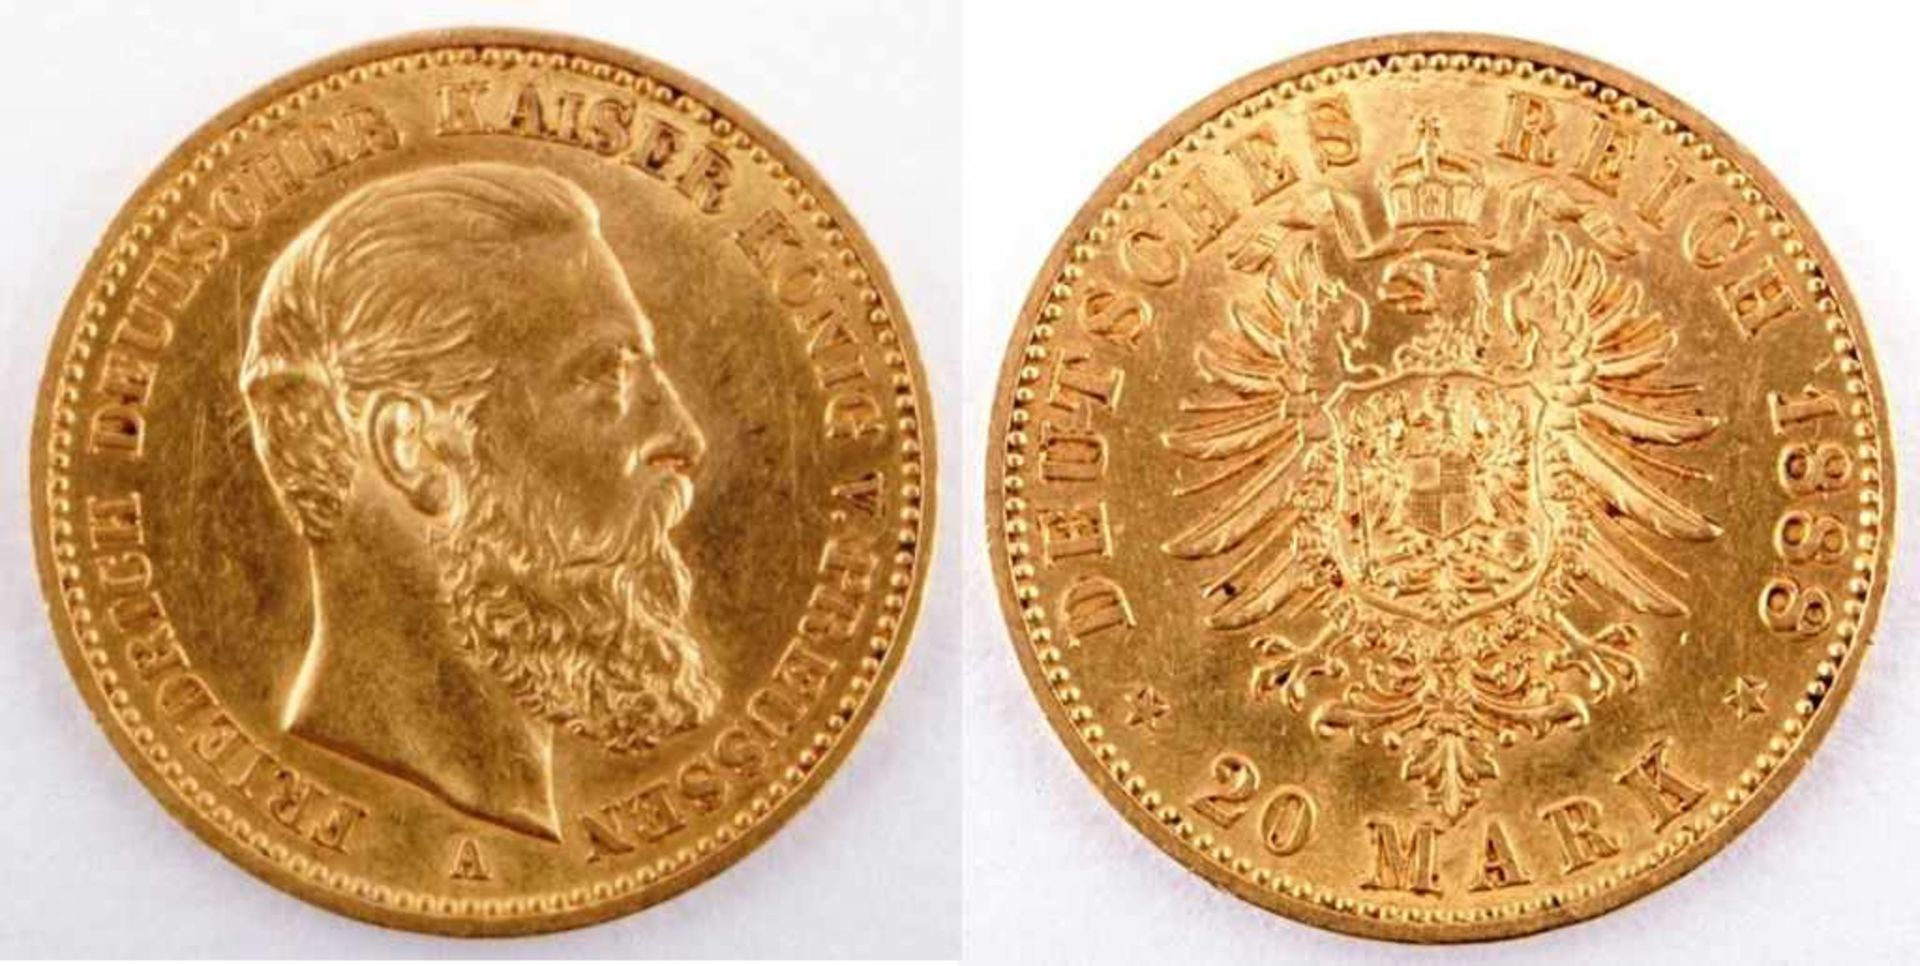 Los 11 - Gold coin: 20 Mark 1888 Prussia, 20 Mark, Friedrich III., year 1888 A, gold coin, 900/1000 fineness,